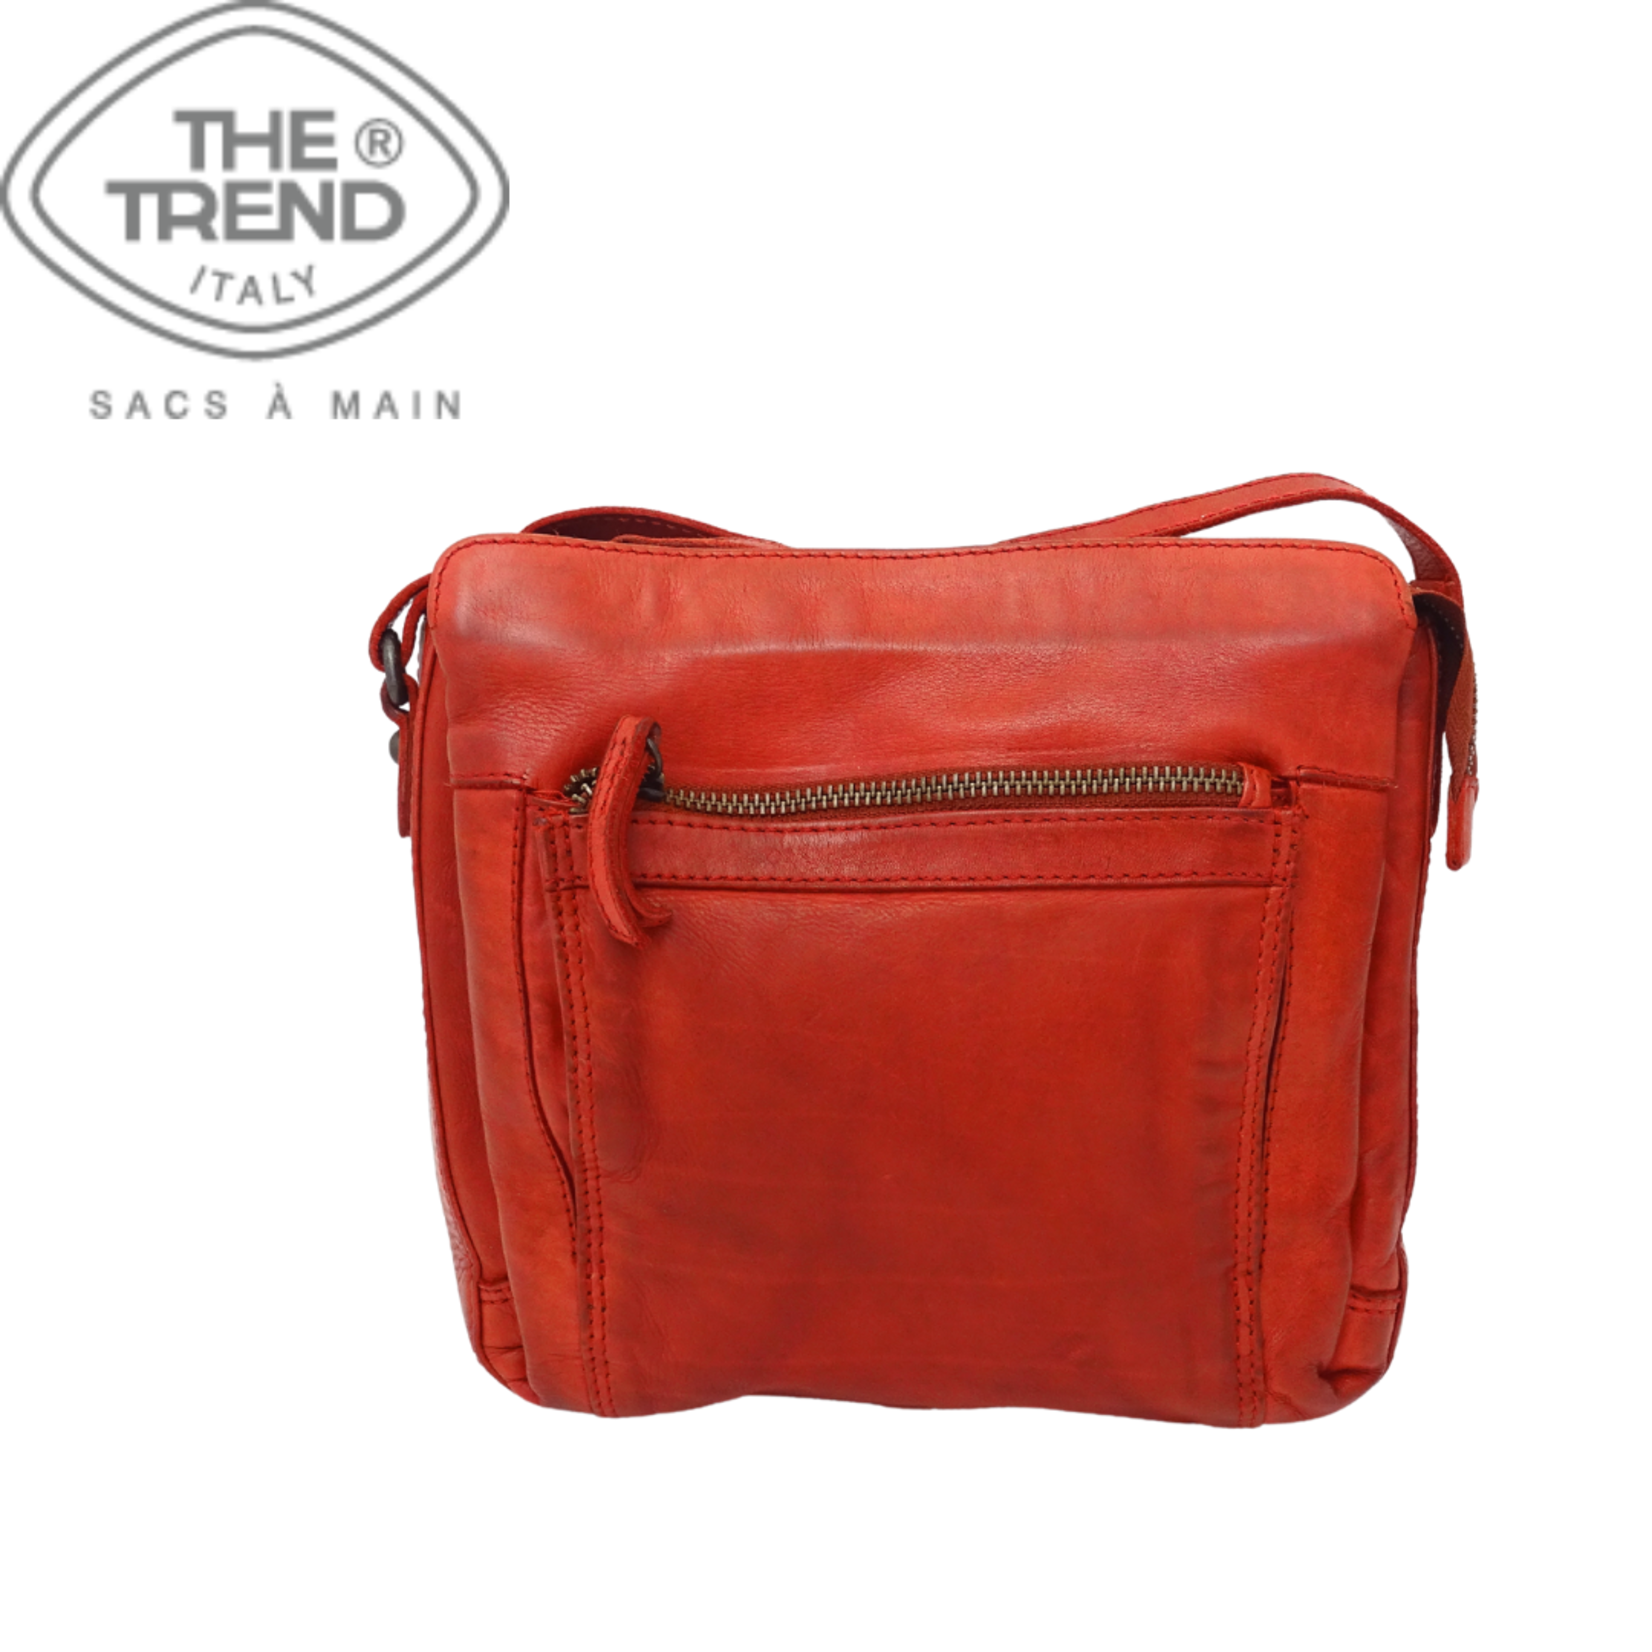 The Trend The Trend 22379 red